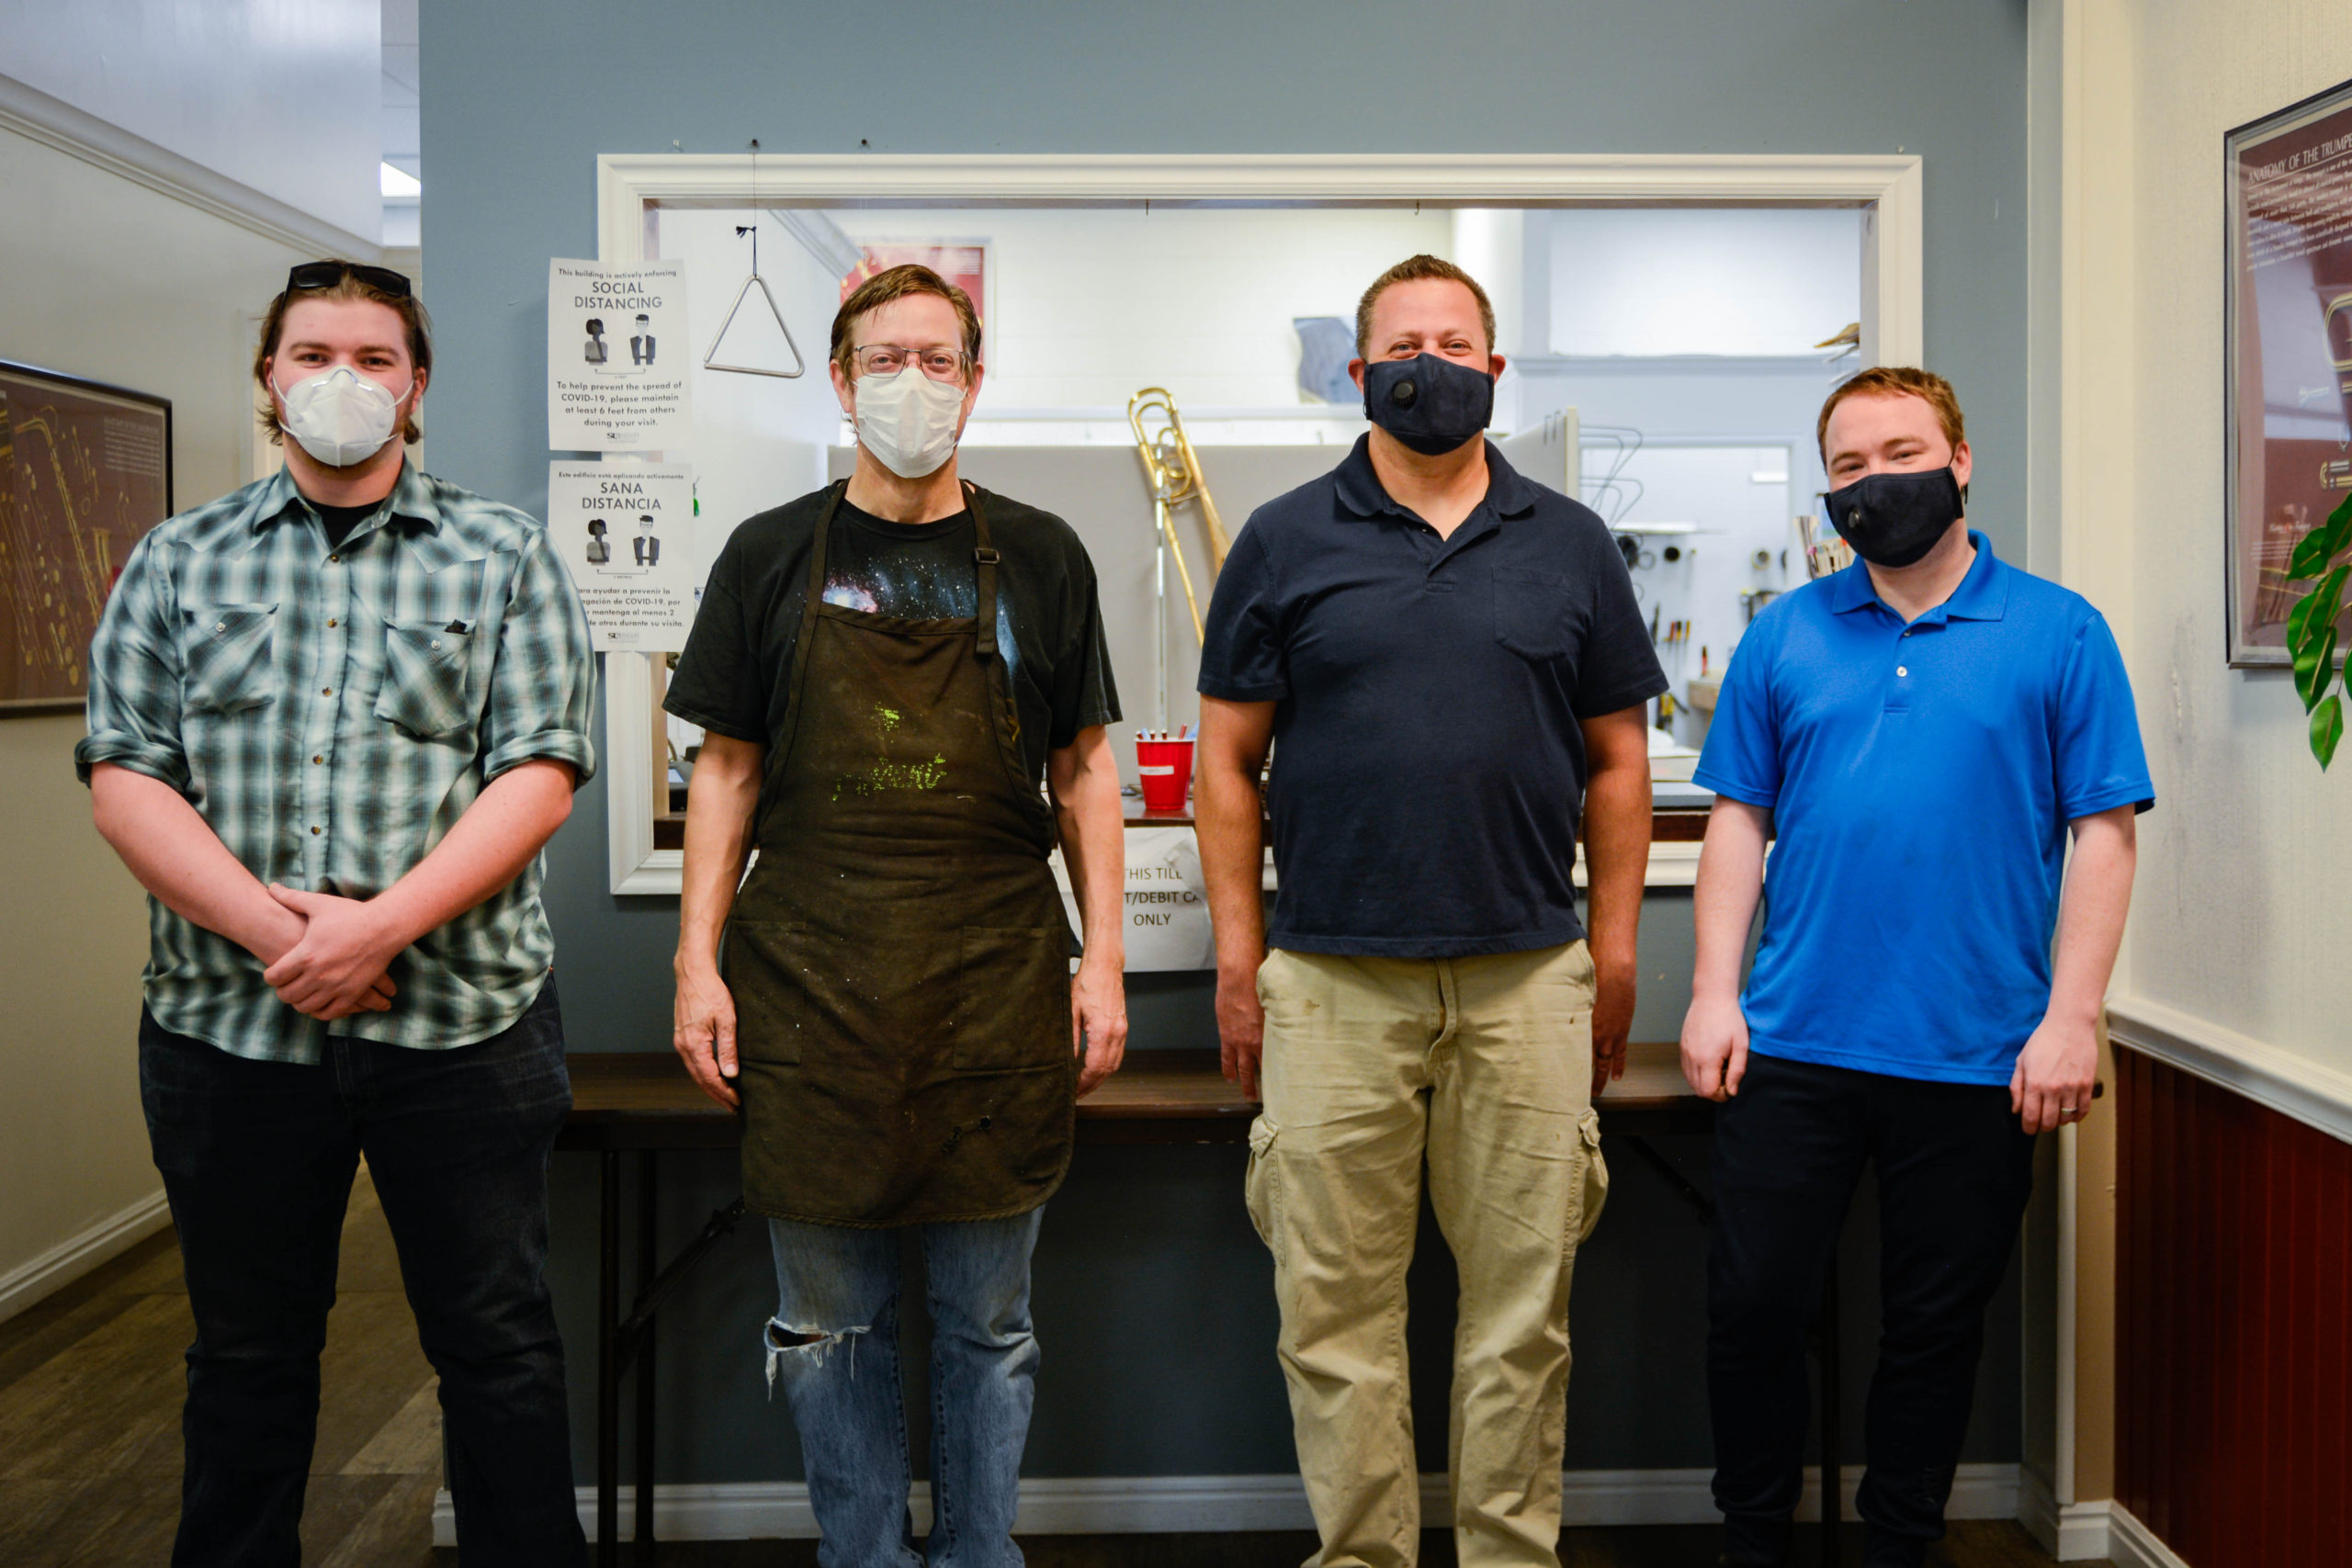 Band repair technicians Maxwell Wasson, James Bauer, Dan Hansen, and Tyler Olsen standing in front of the Murray band repair window wearing Covid masks.